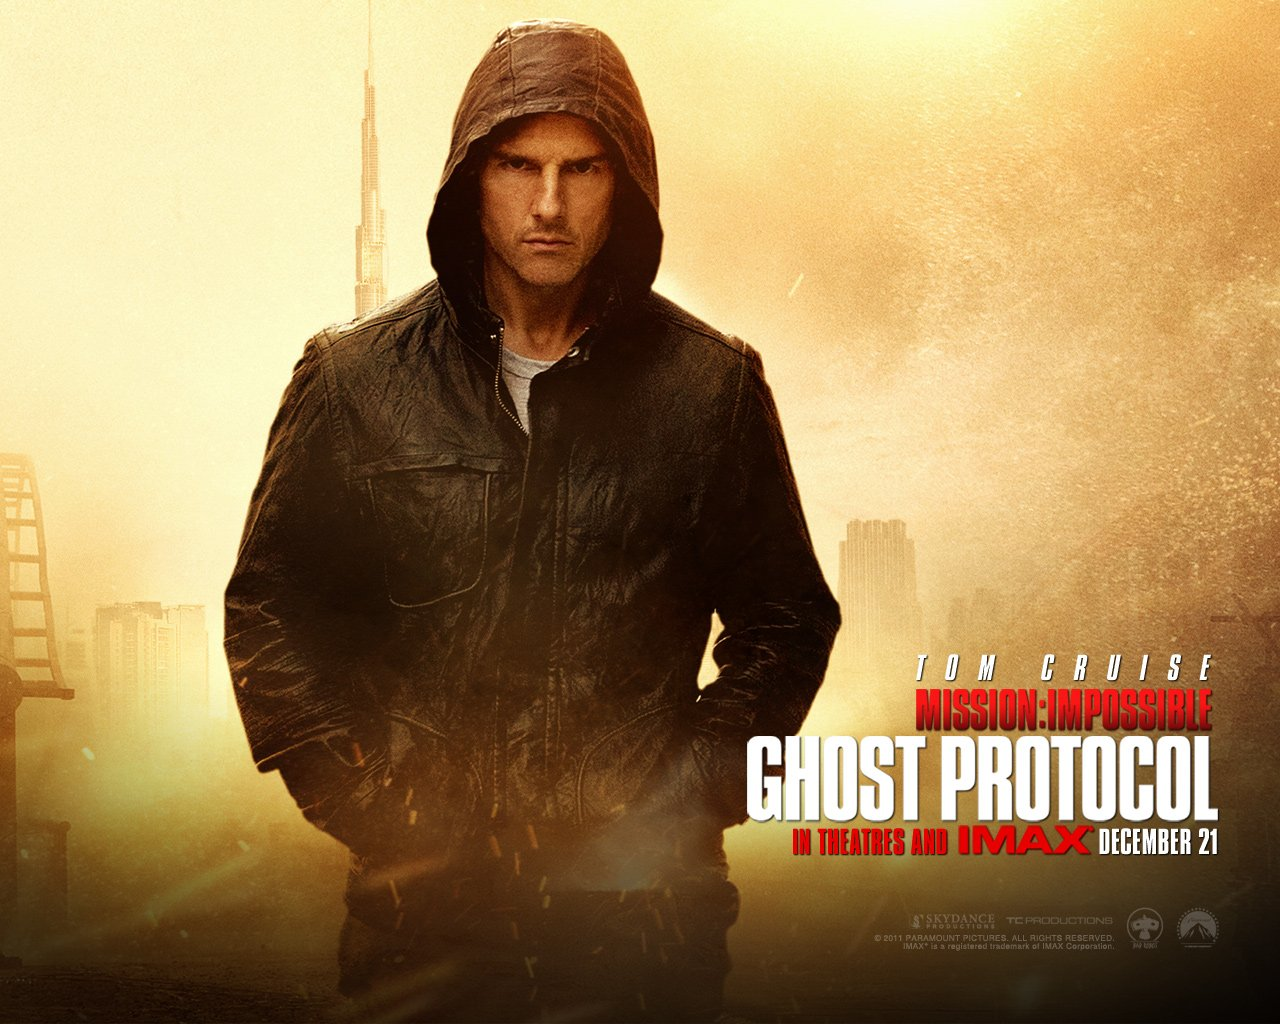 Tom Cruise in Mission Impossible 4 4172138 1280x1024 All For 1280x1024